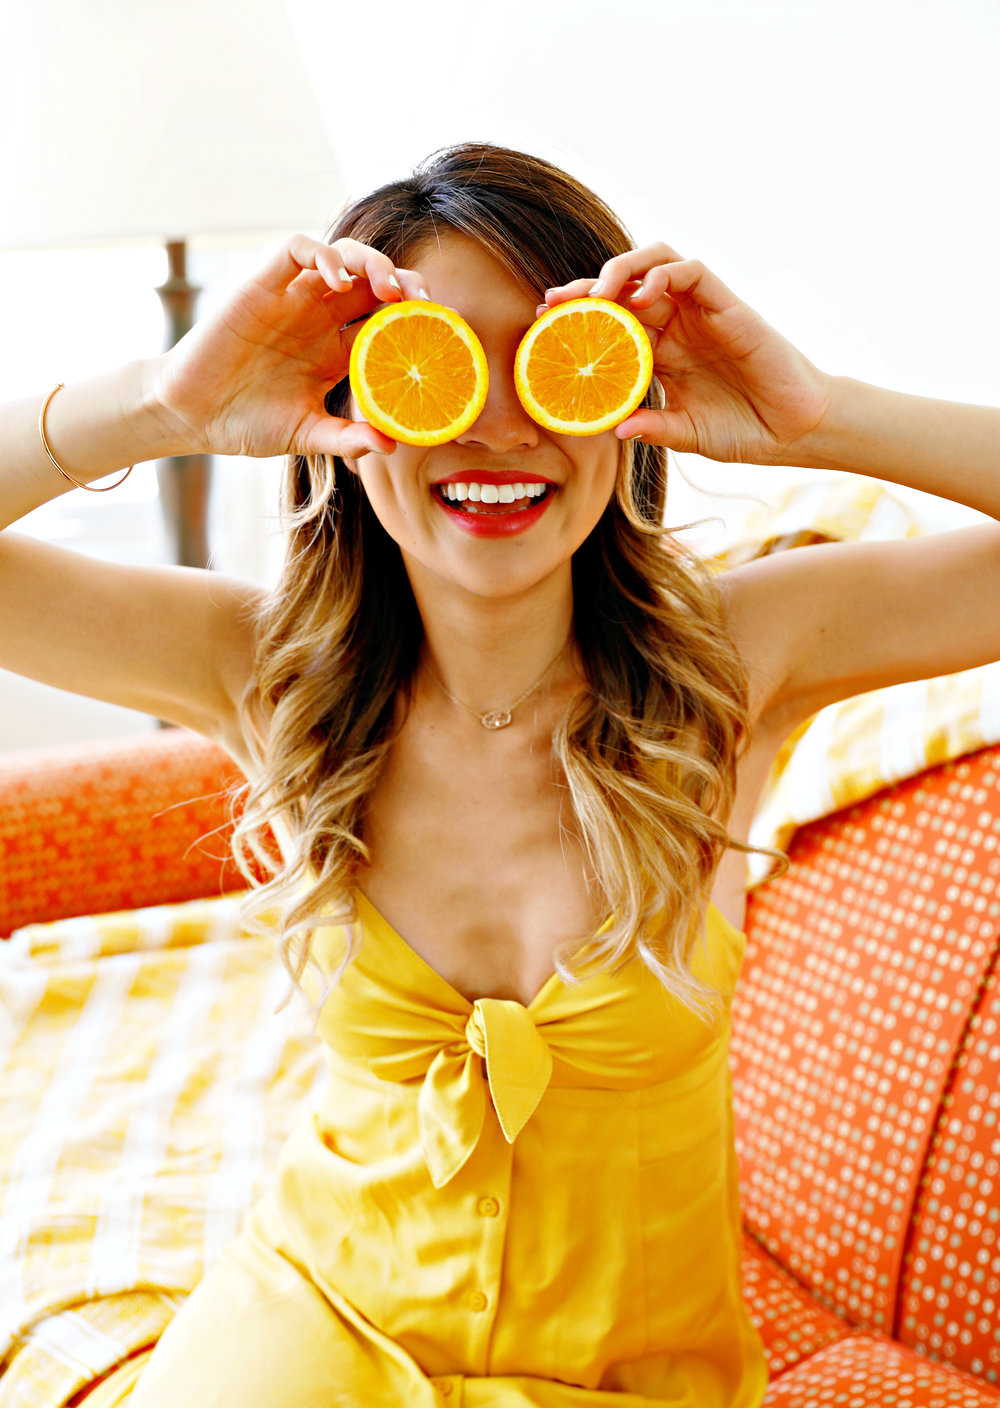 How to Pose with Citrus Fruits FashionbyAlly